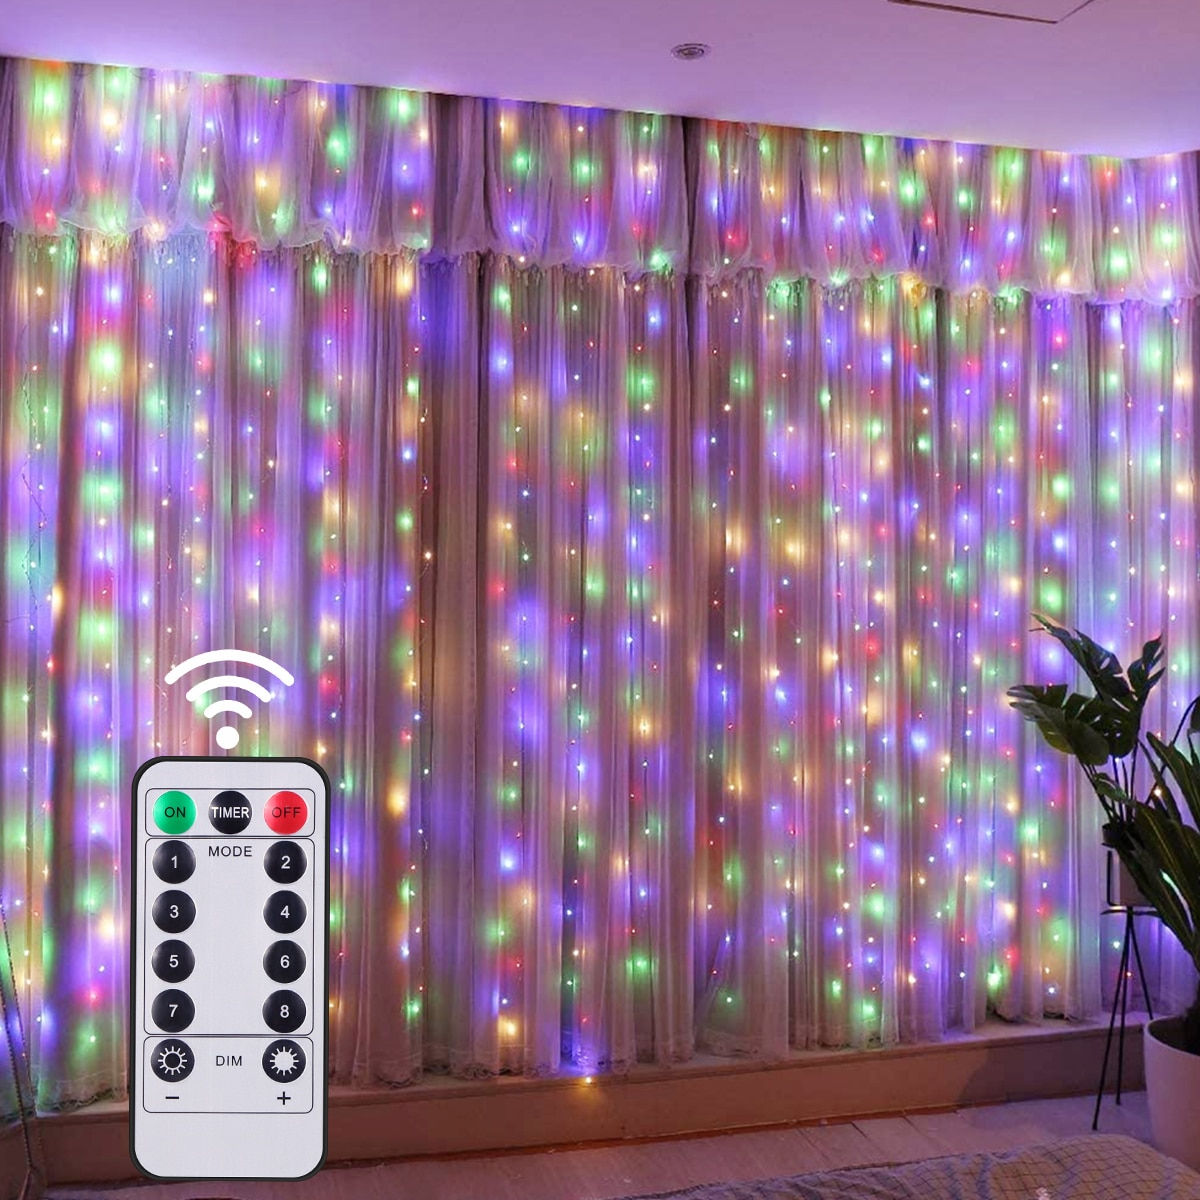 New Year RGB Garland Curtain Lamp Wedding Christmas Lights Festoon LED String Bedroom Decoration Curtains For Home Fairy Lights 3m globe led garland starry crystal wishing ball string lights decors for curtains bedroom living room balcony christmas wedding